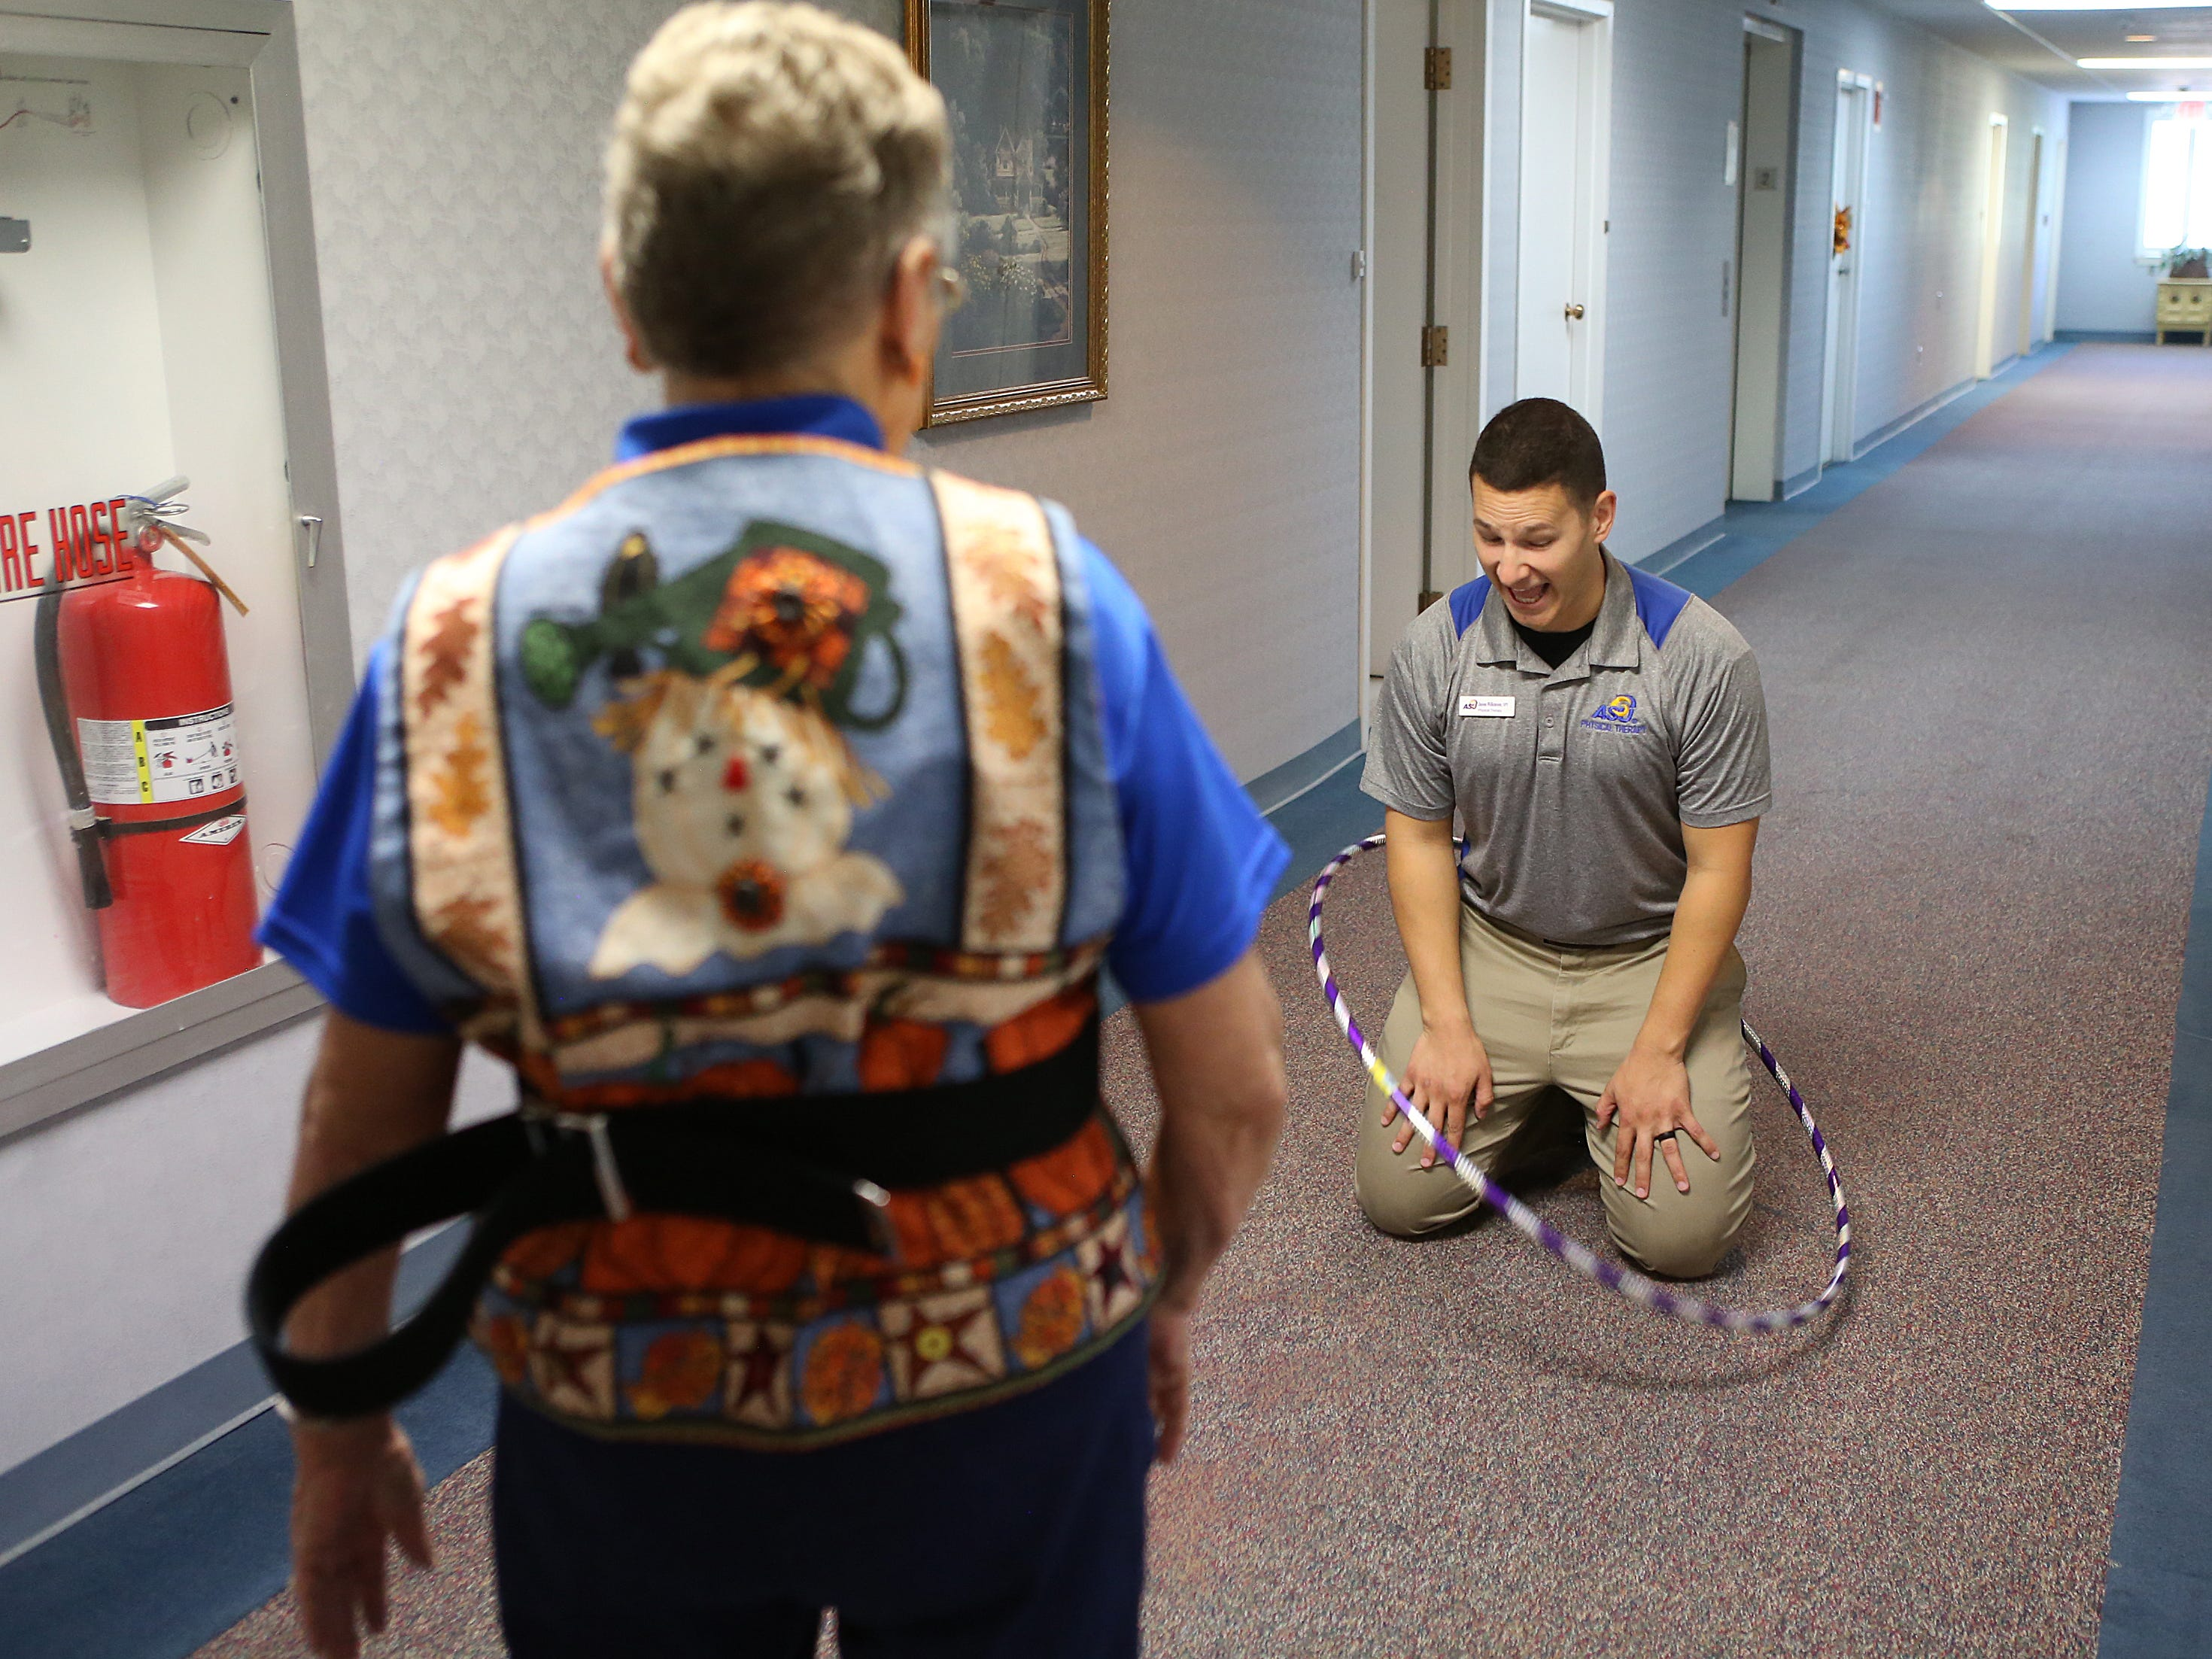 Angelo State University physical therapy student Jason Wilkinson laughs as resident Virginia Lane tosses a hula hoop around him during a Balance and Fall Risk Reduction Program for seniors at Baptist Retirement Community Monday, Oct. 1, 2018.